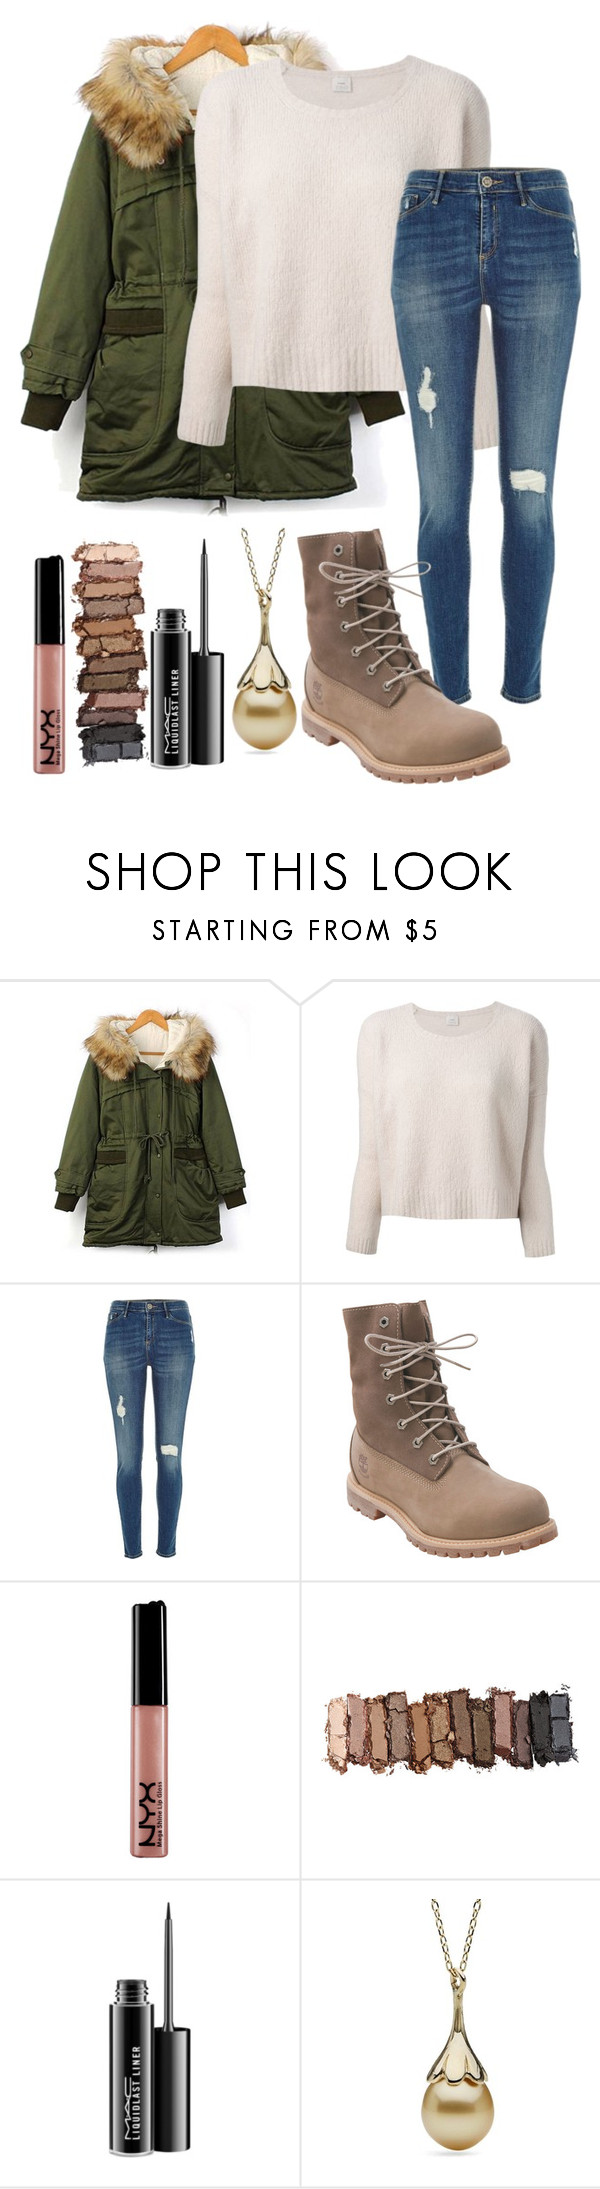 """Baby It's Cold Outside"" by jnoelleh ❤ liked on Polyvore featuring Pinko, River Island, Timberland, Urban Decay and MAC Cosmetics"